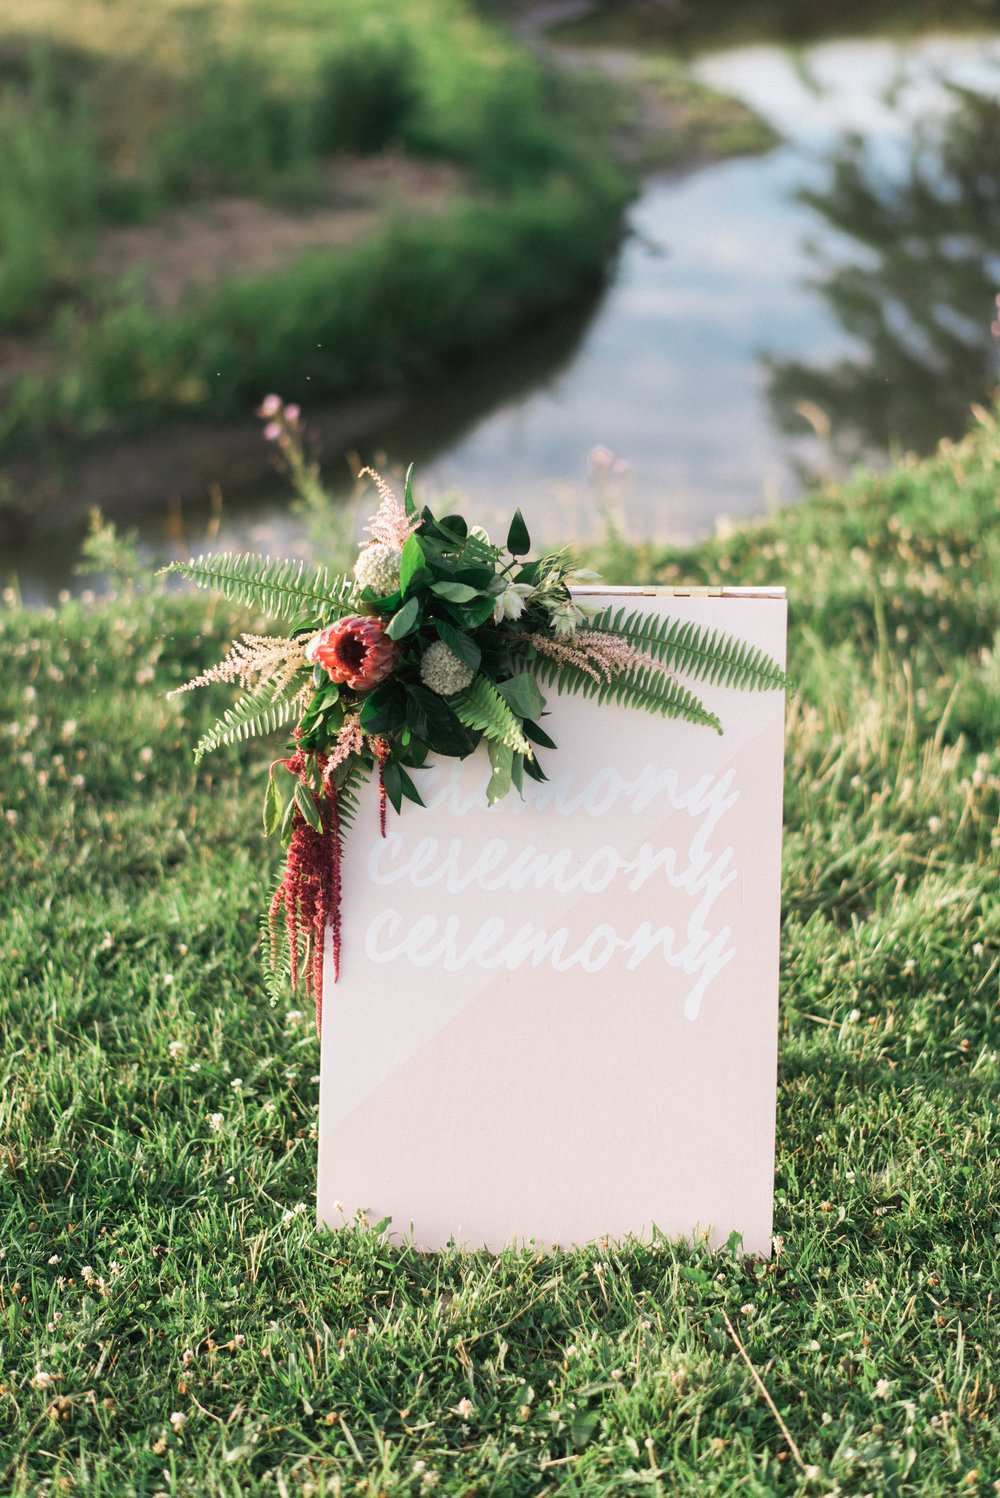 lauren + austin's outdoor wedding - design sponge